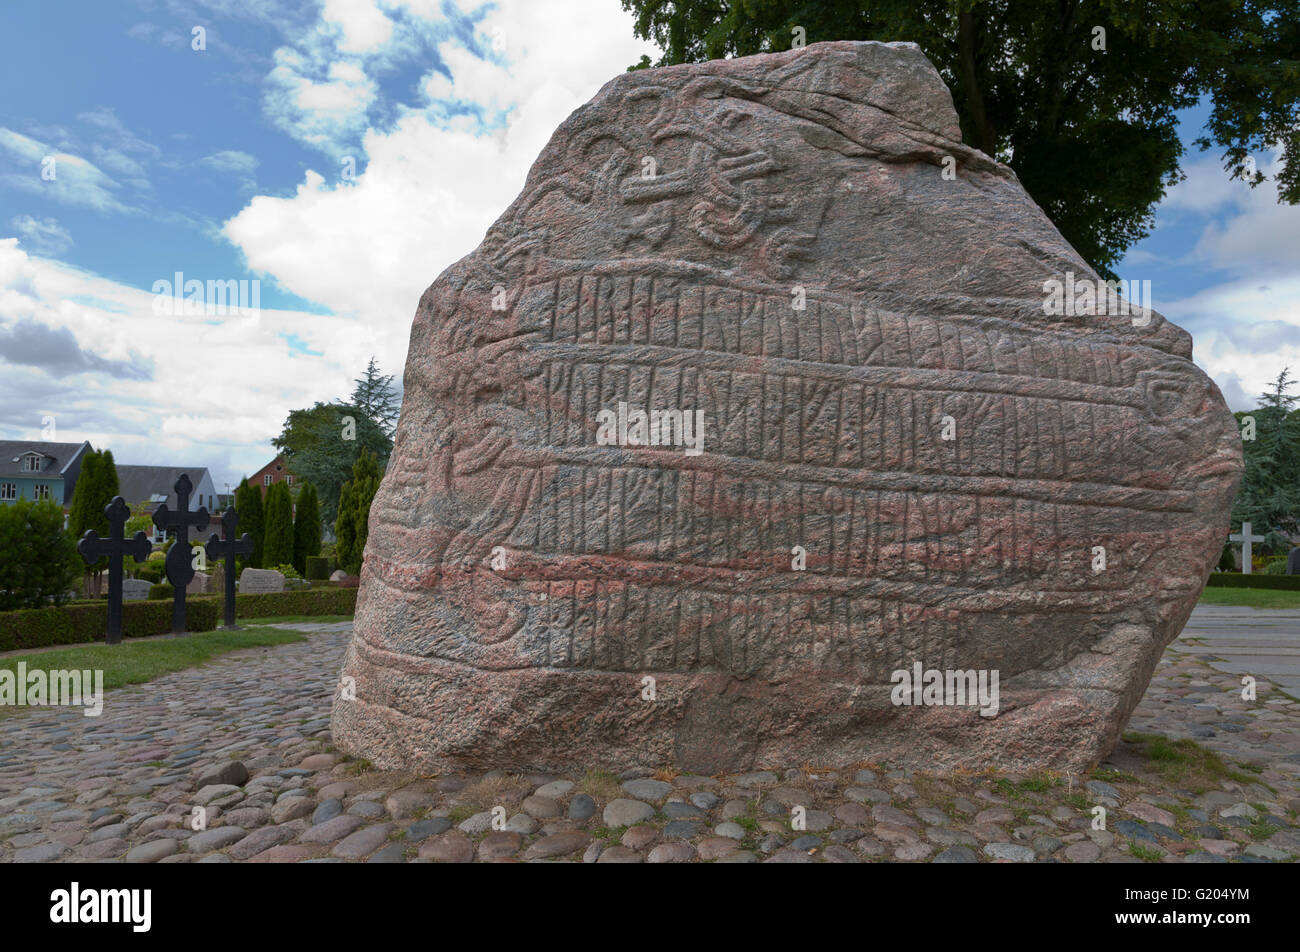 Runic inscription on the large Jelling rune stone from the tenth century raised by King Harald Bluetooth in Jelling. Stock Photo